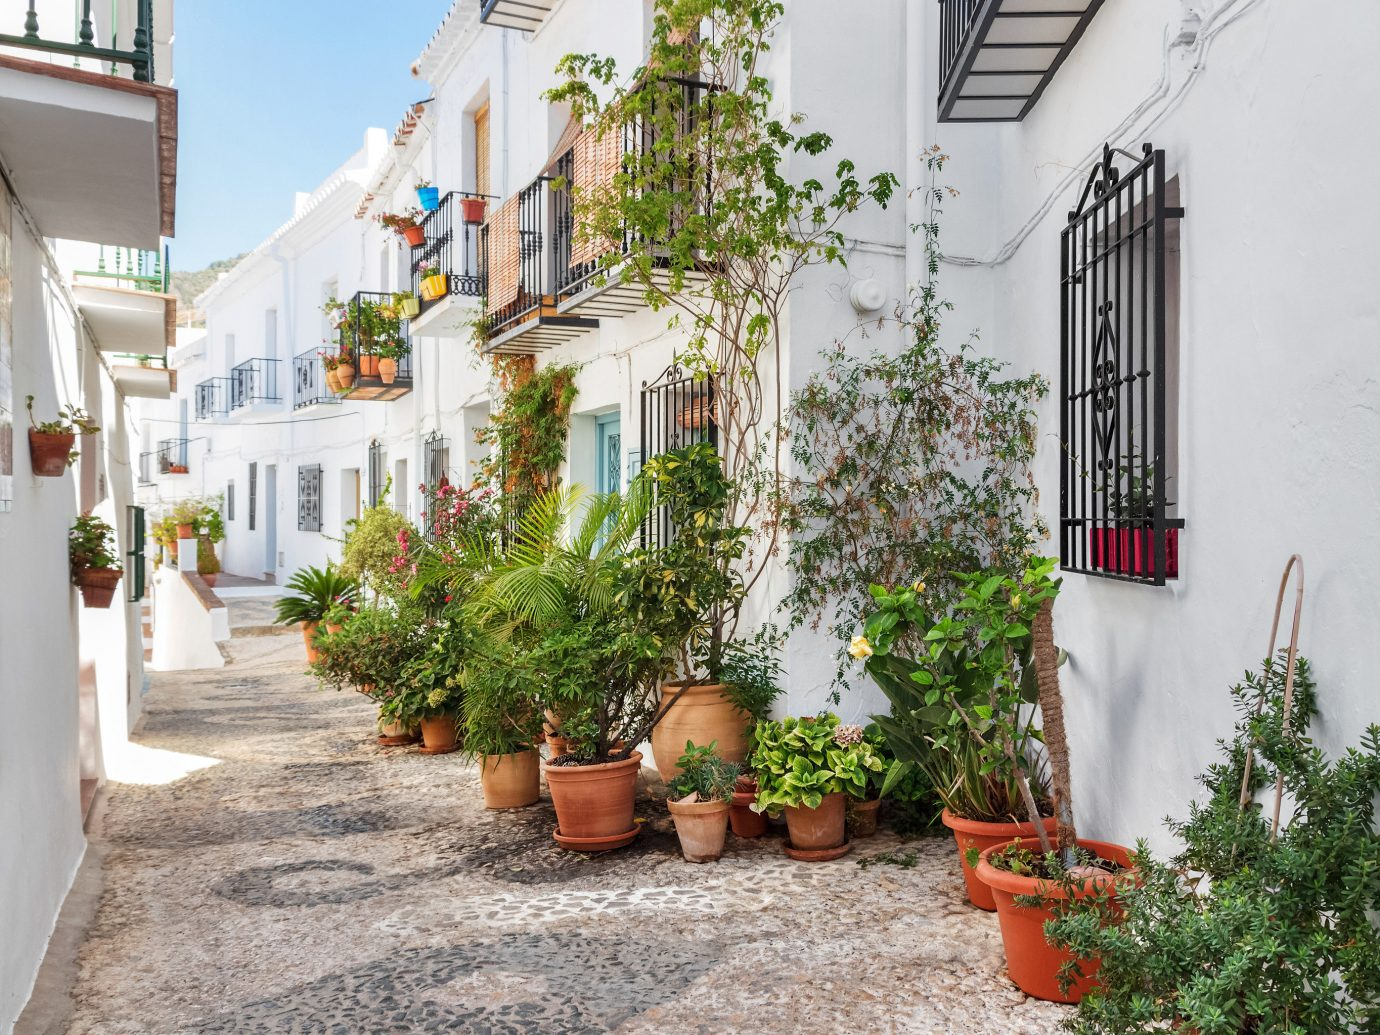 europe Spain Trip Ideas Town property neighbourhood alley flower house street Courtyard home real estate plant facade window apartment tree Balcony road City